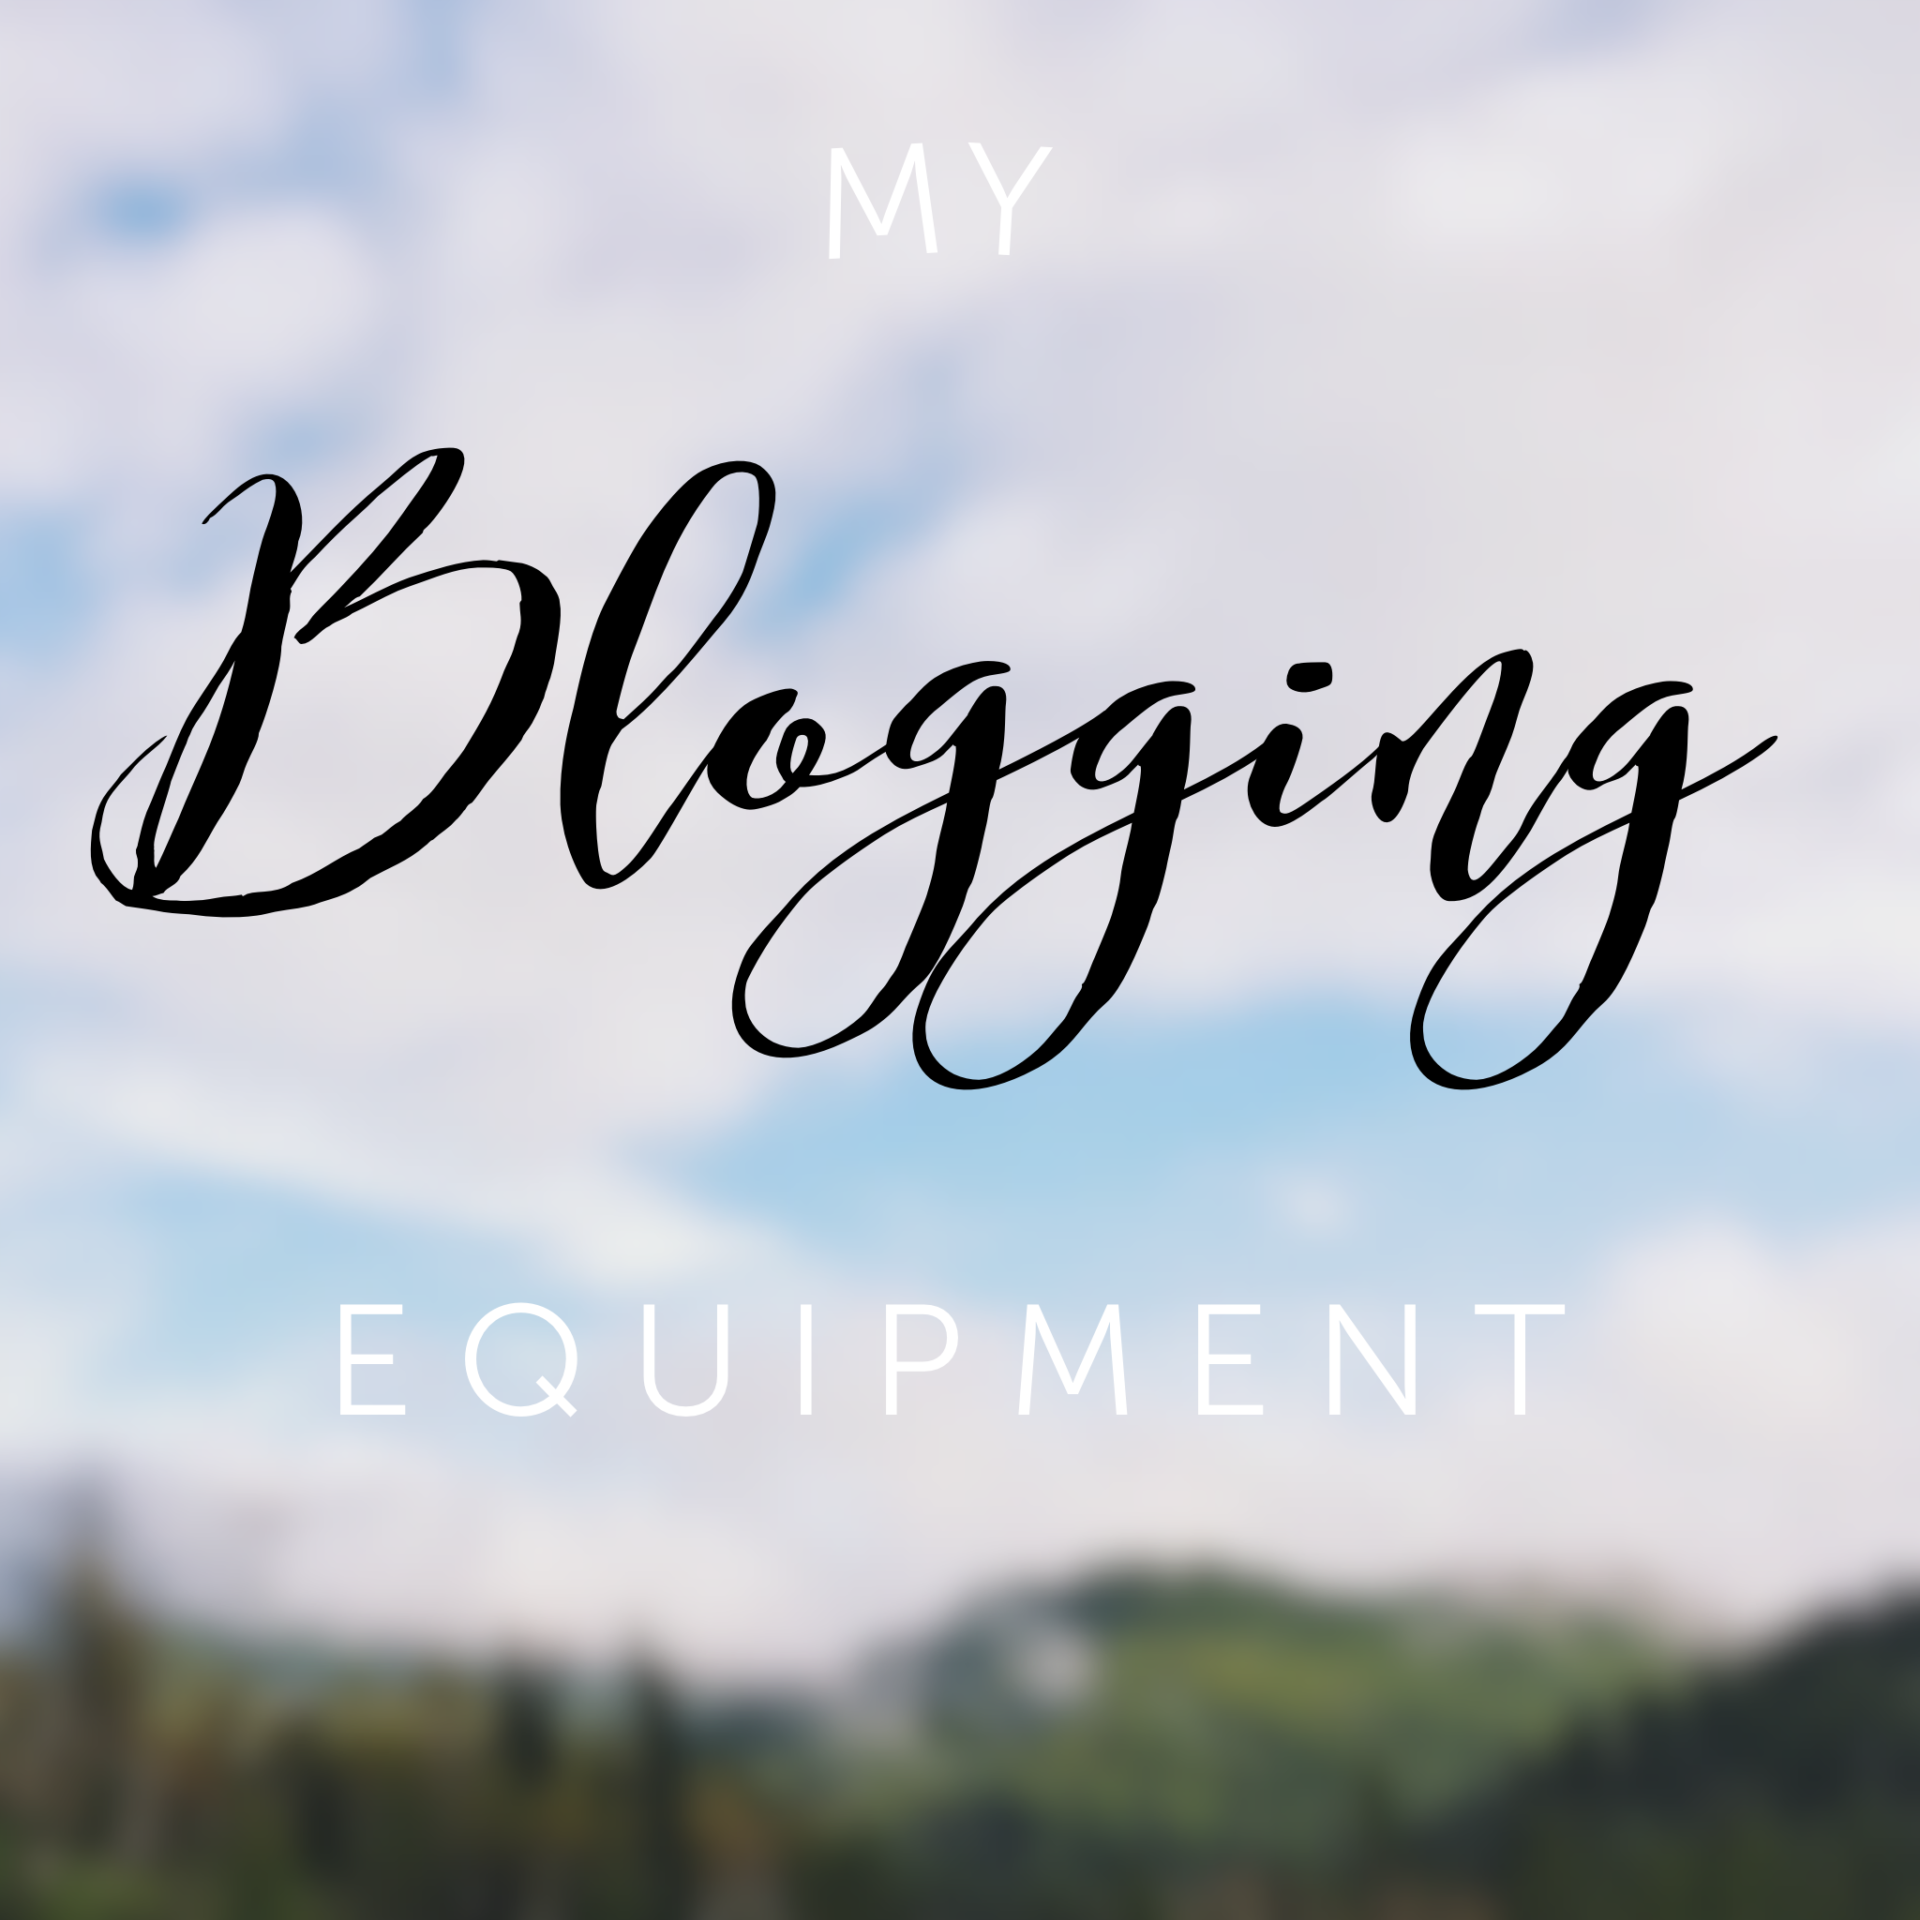 My blogging equipment